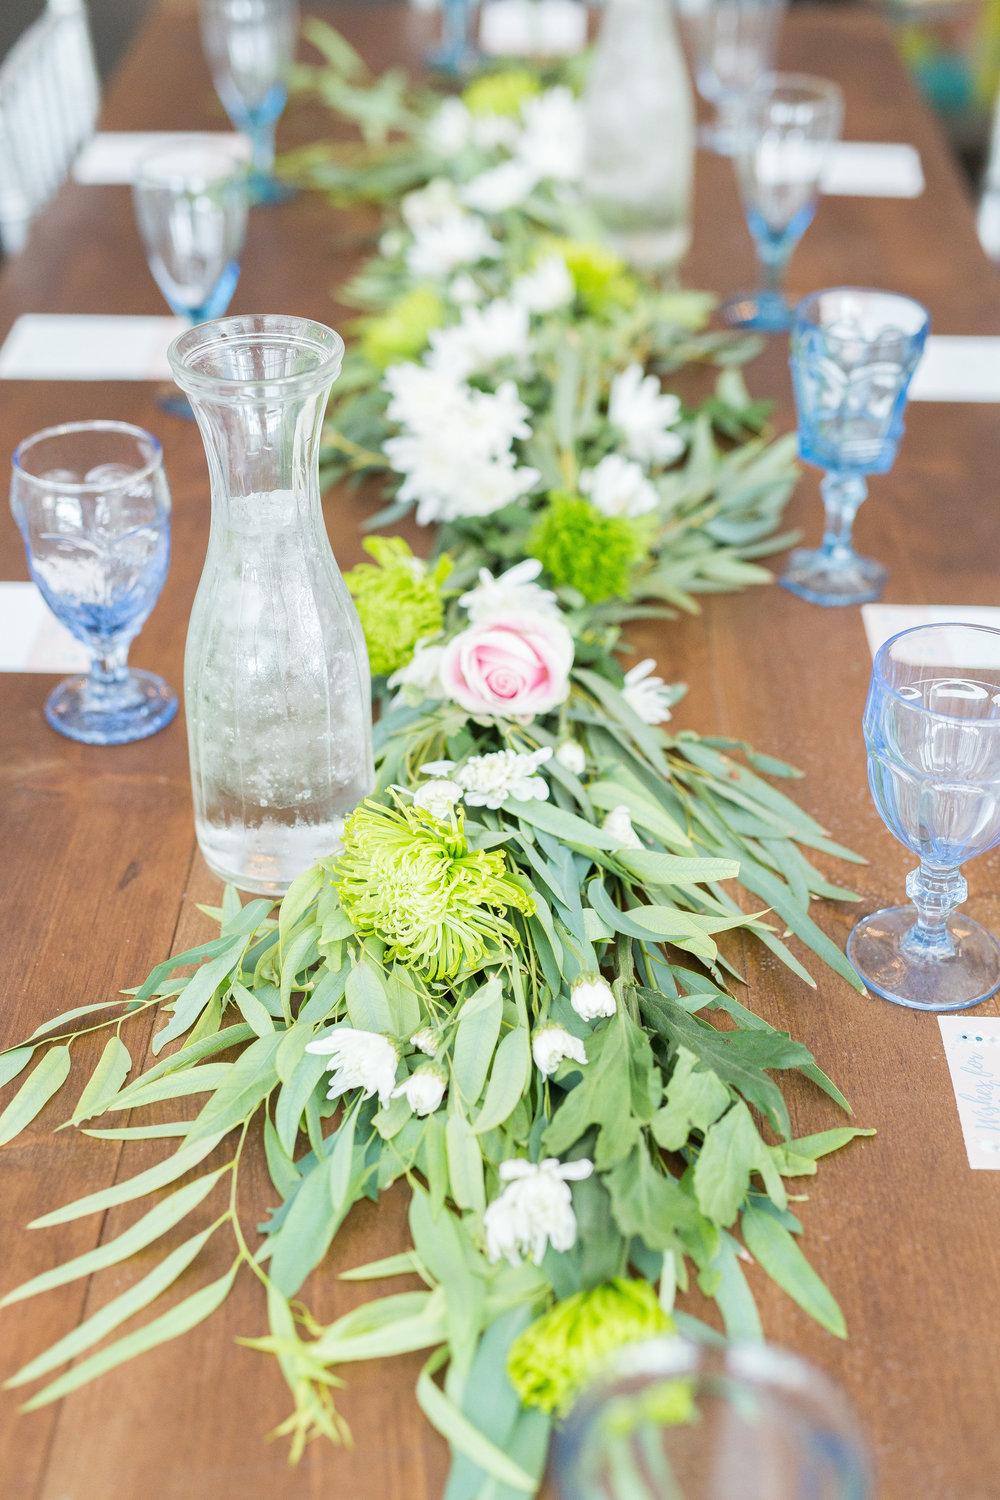 Modern Meets Bohemian Baby Shower with Tremaine Ranch Wedding Event Tableware Vintage Rentals Arizona8.jpg